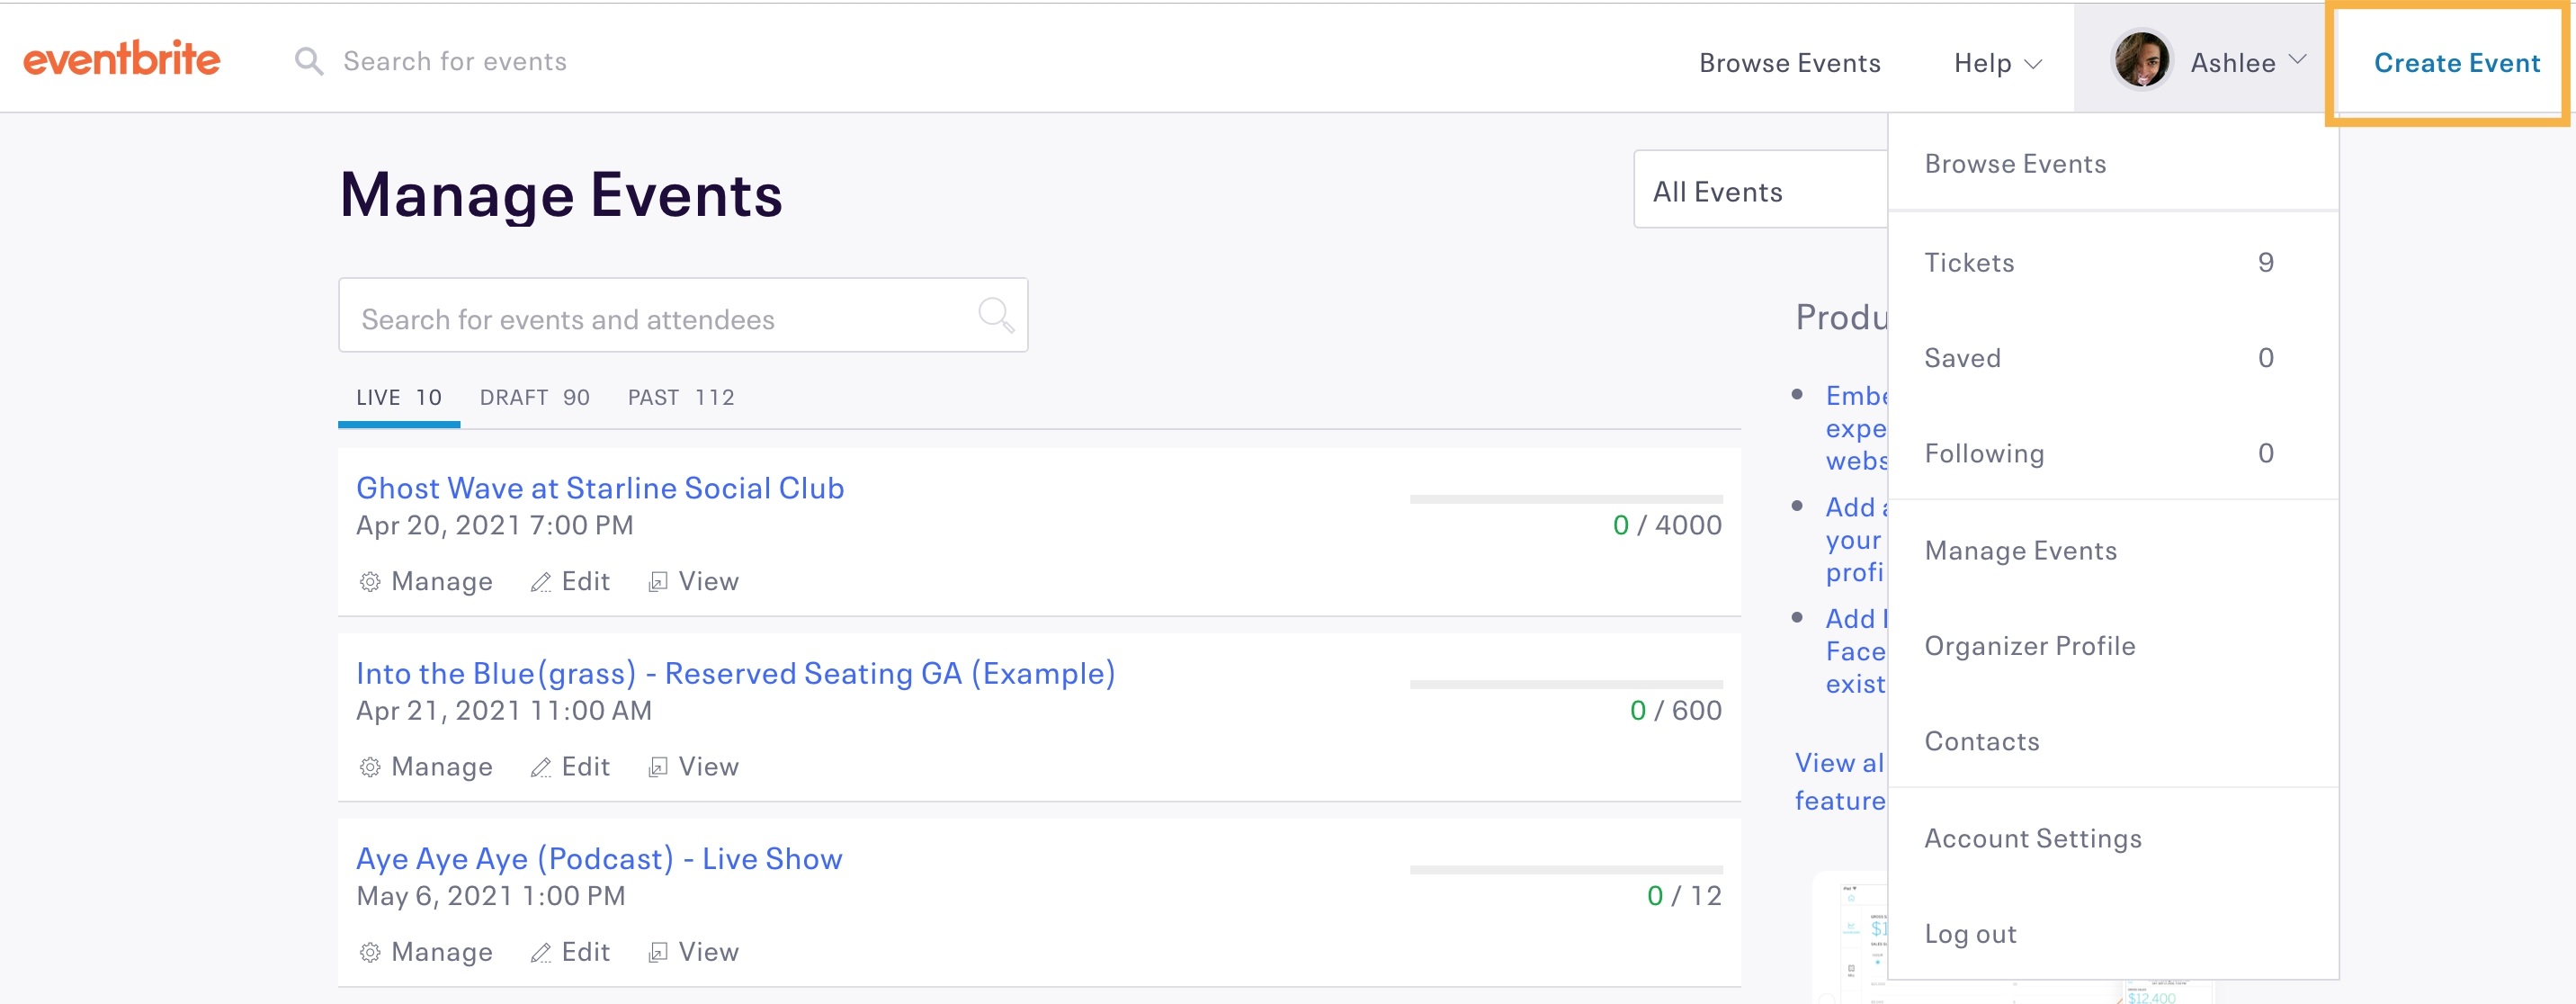 How To Create And Edit Ticket Types | Eventbrite Help Center regarding Example Table For 1 Month 1 Week Event Process